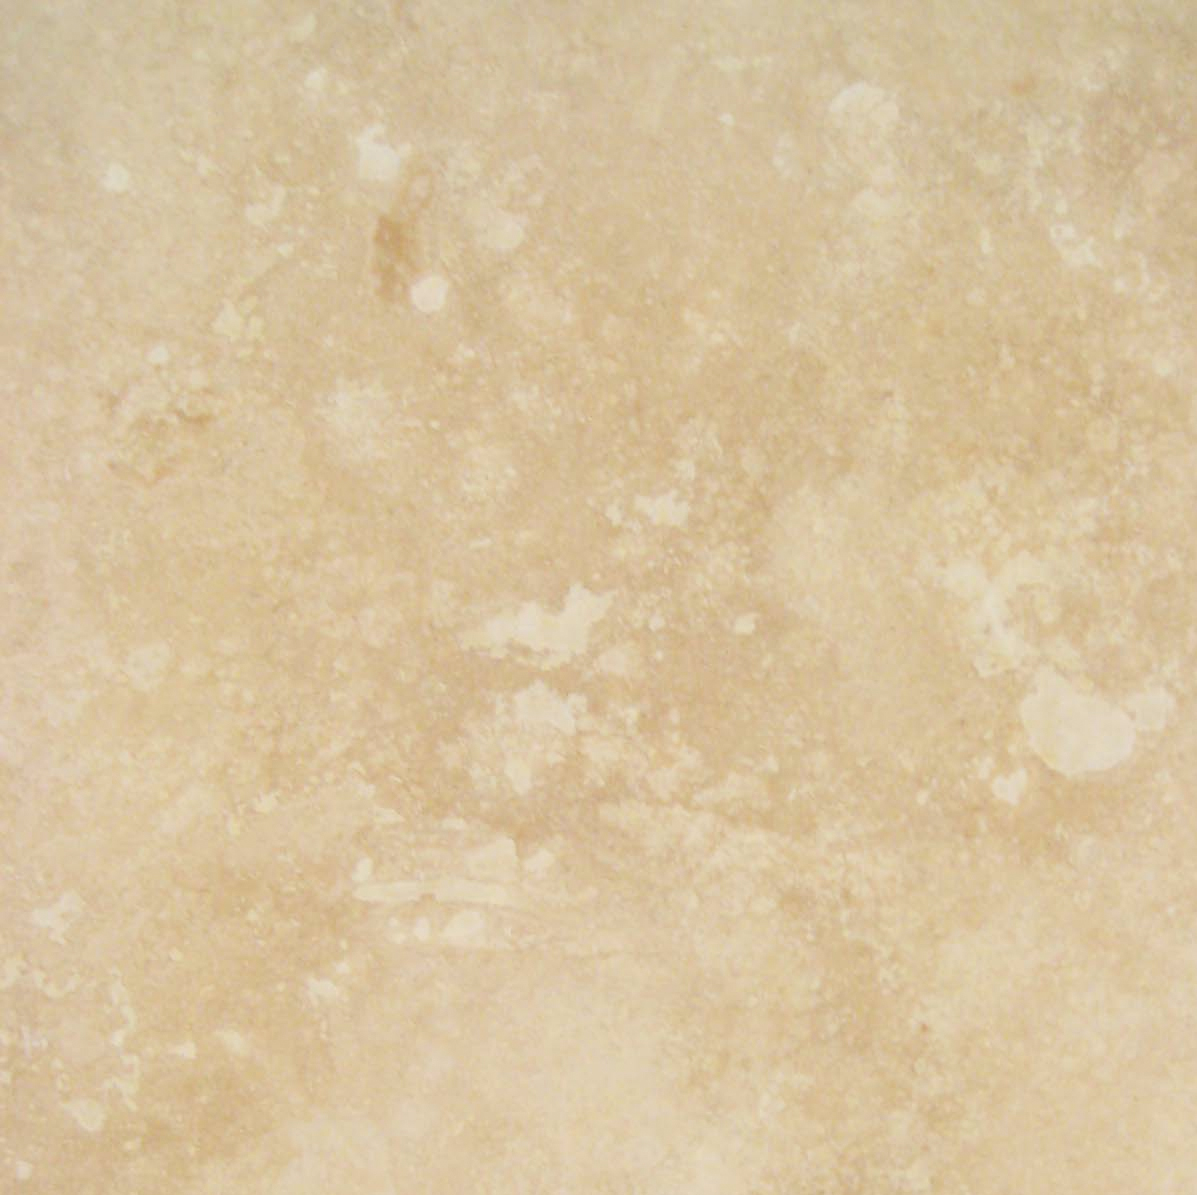 Discount Marble Sills In Miami Quality Convenience